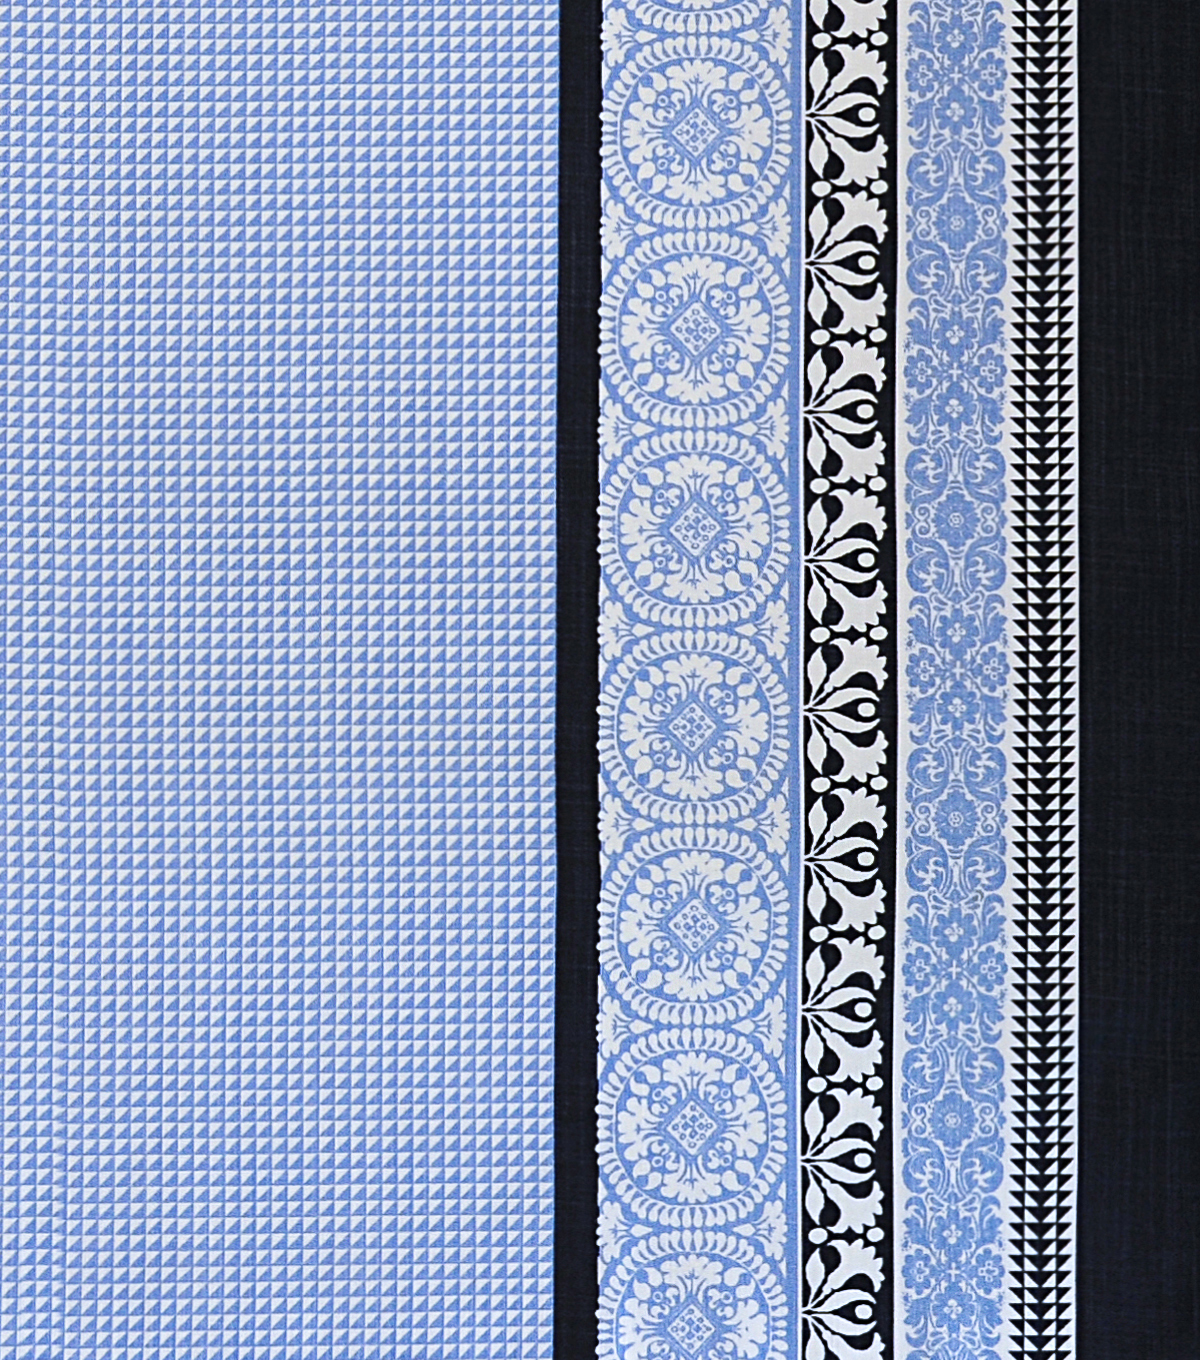 Coastal Lagoon Cotton Lyocell Fabric-White Blue Scarf Print